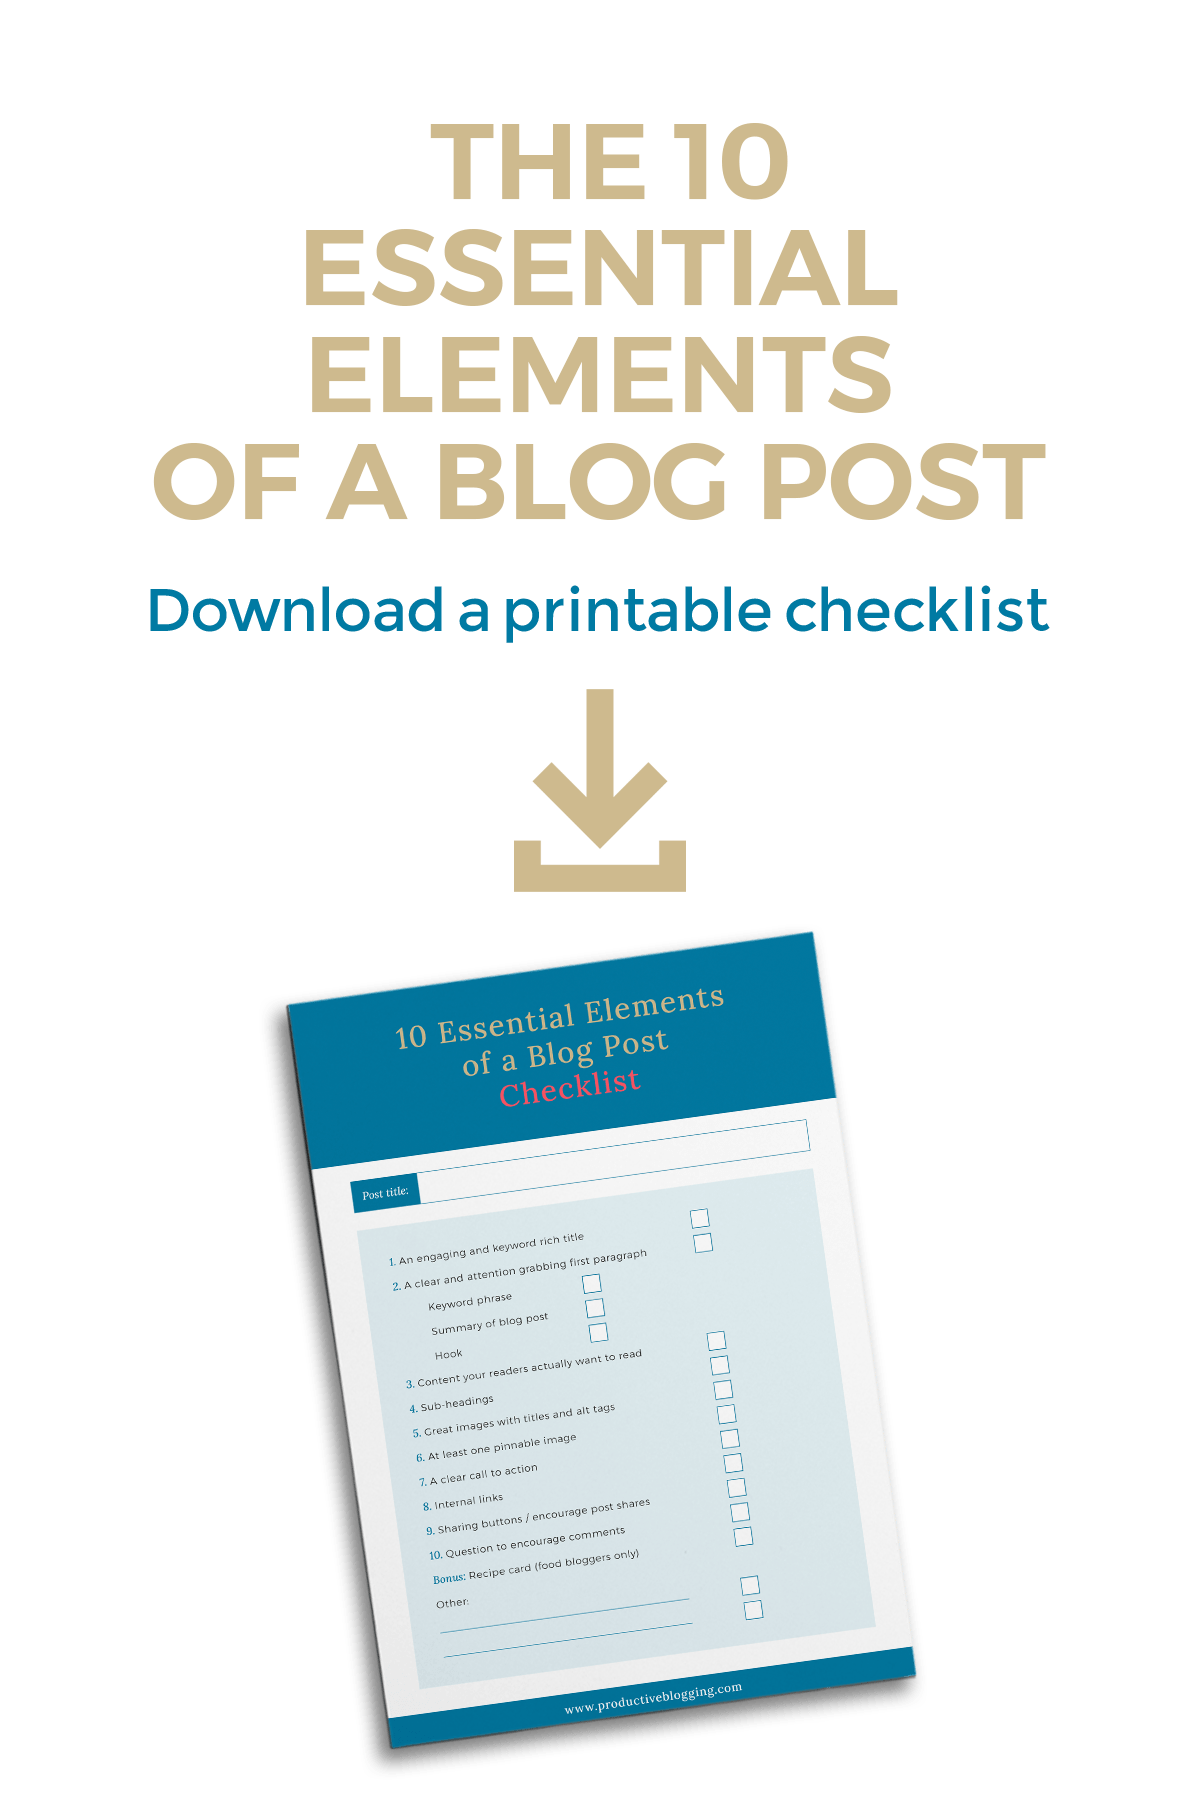 The 10 Essential elements of a blog post - download the printable checklist